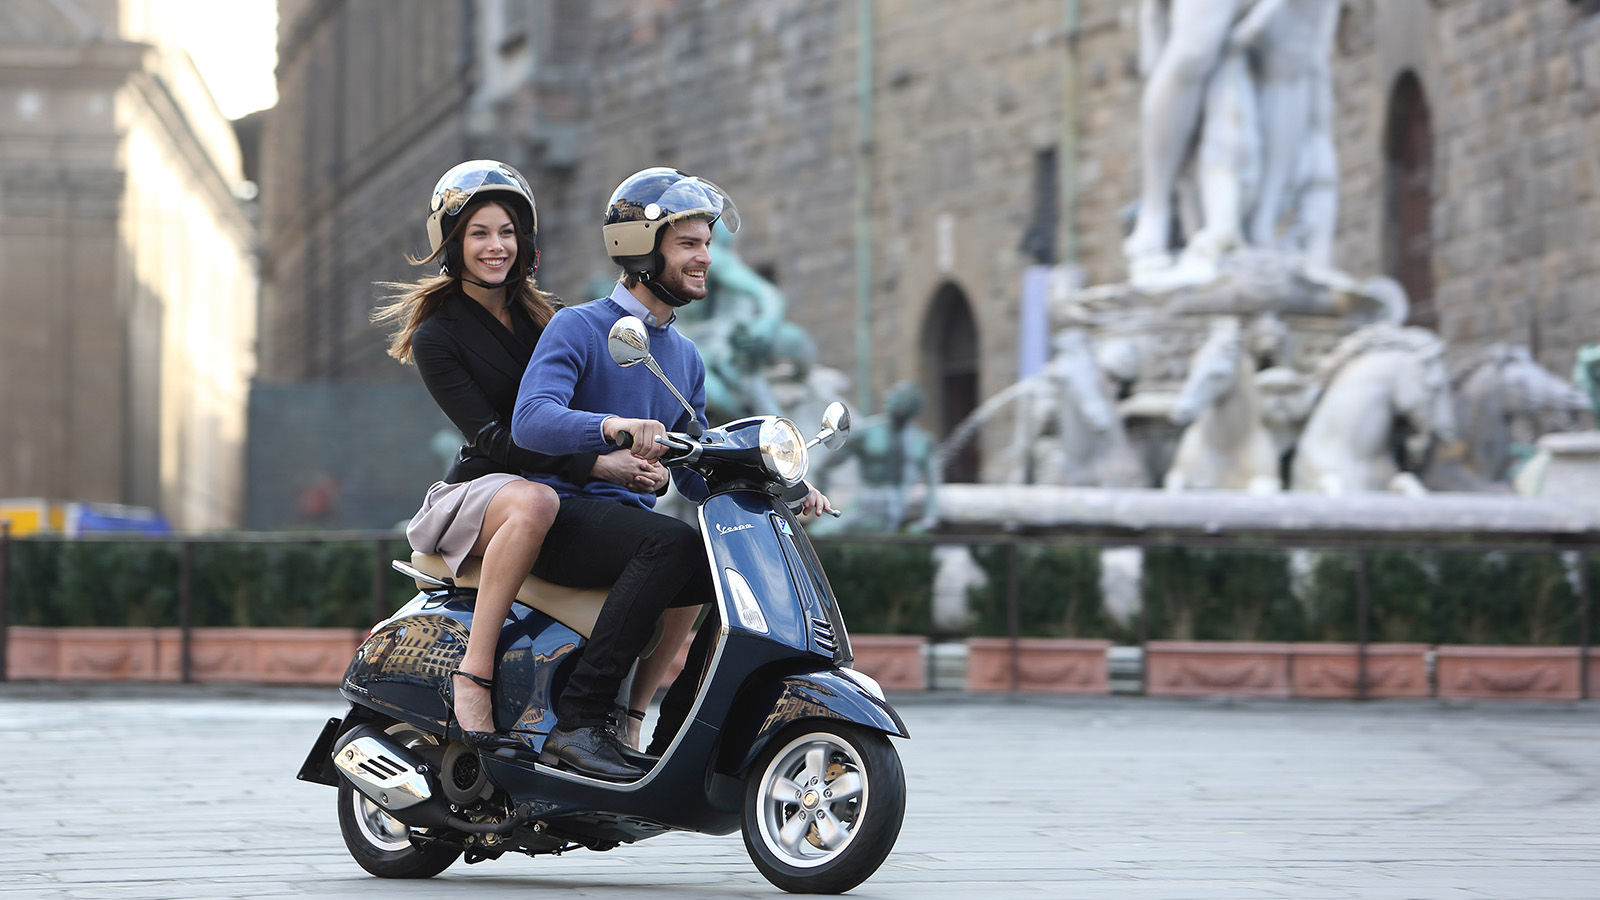 Vespa Tours in Rome